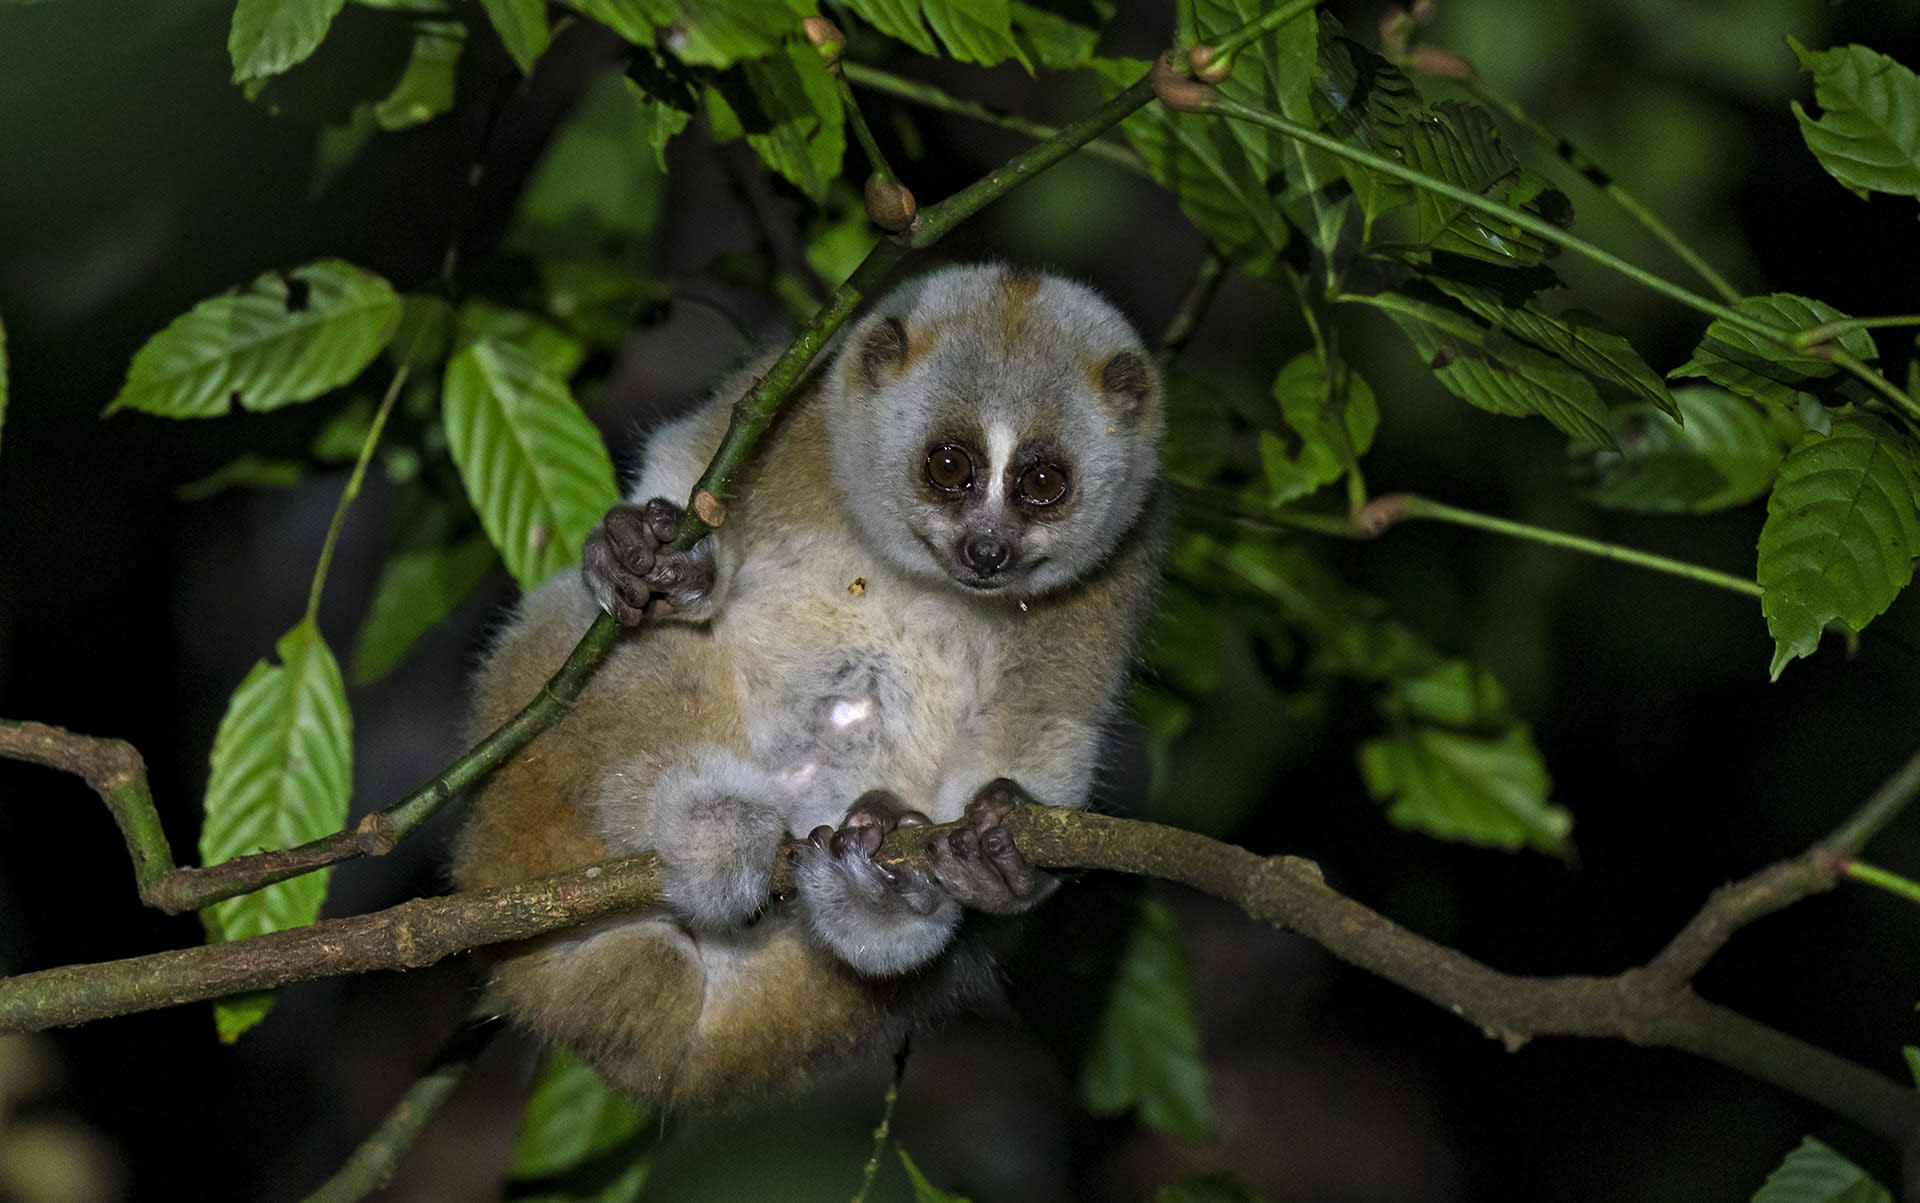 Namdapha supports seven species of primates, from the common rhesus macaque to more threatened populations of the hoolock gibbon, slow loris, and Assamese macaque